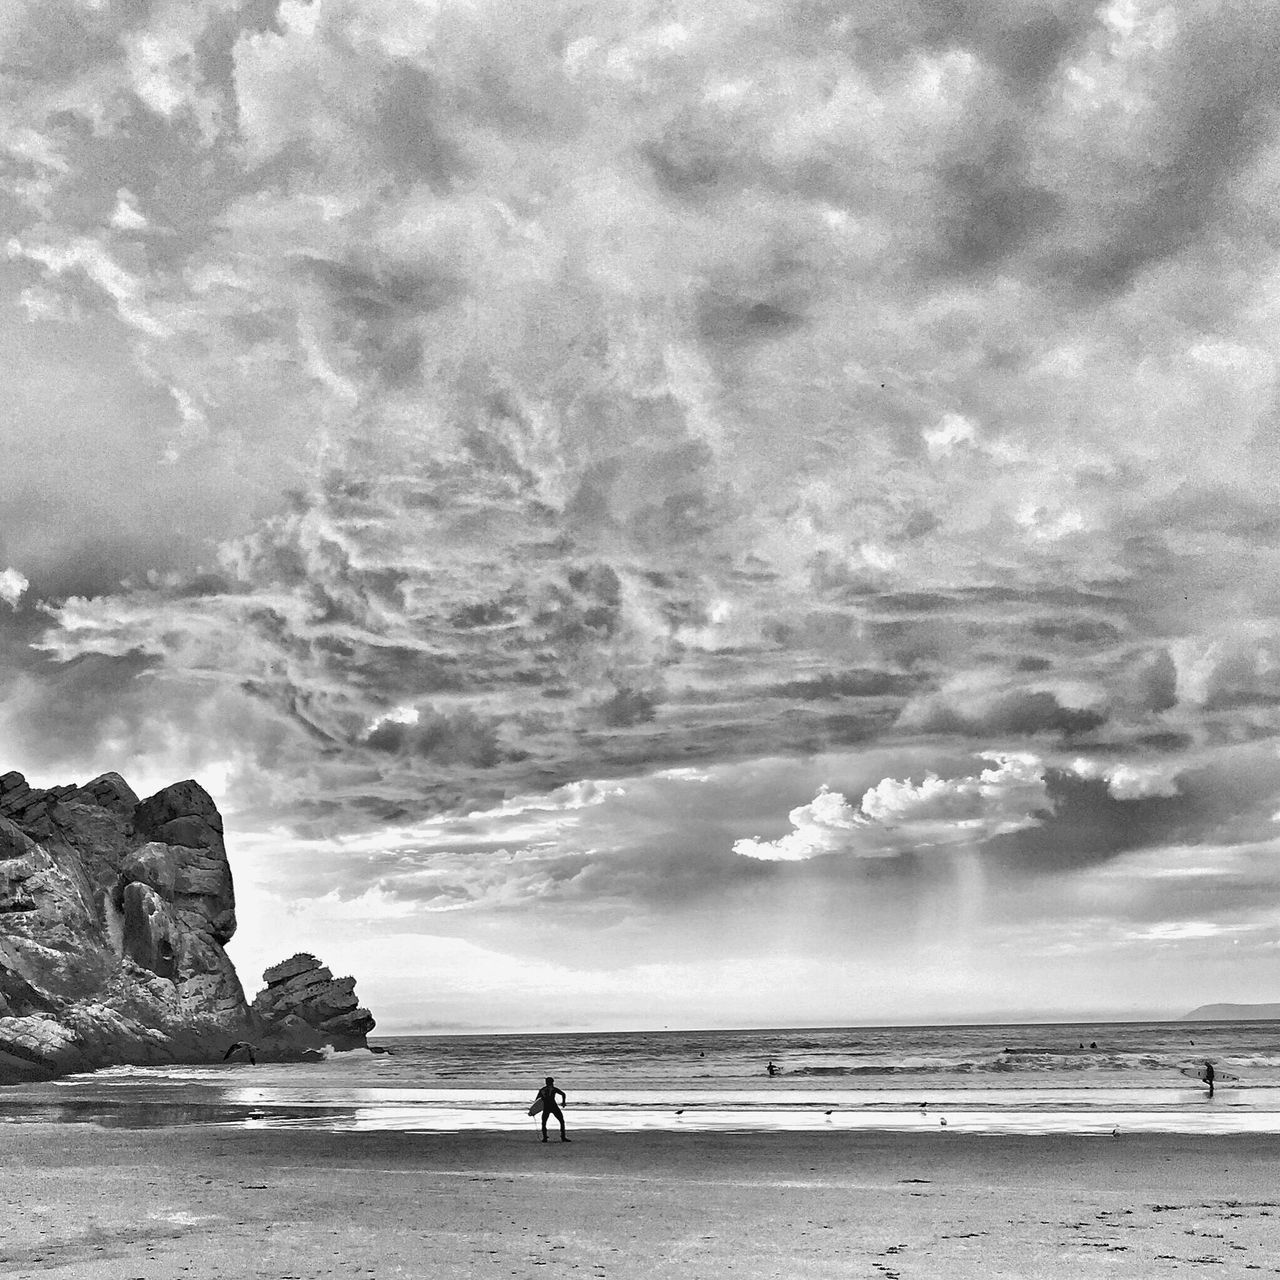 Stormy days ahead... Sea Cloud - Sky Sky Water Nature Beach Beauty In Nature One Person Outdoors Day Real People Scenics Horizon Over Water People Mothernature Waves, Ocean, Nature Waves Storm Landscape_photography Cloudy Blackandwhite Surfing EyeEm Best Shots EyeEm Nature Lover Stormy Weather